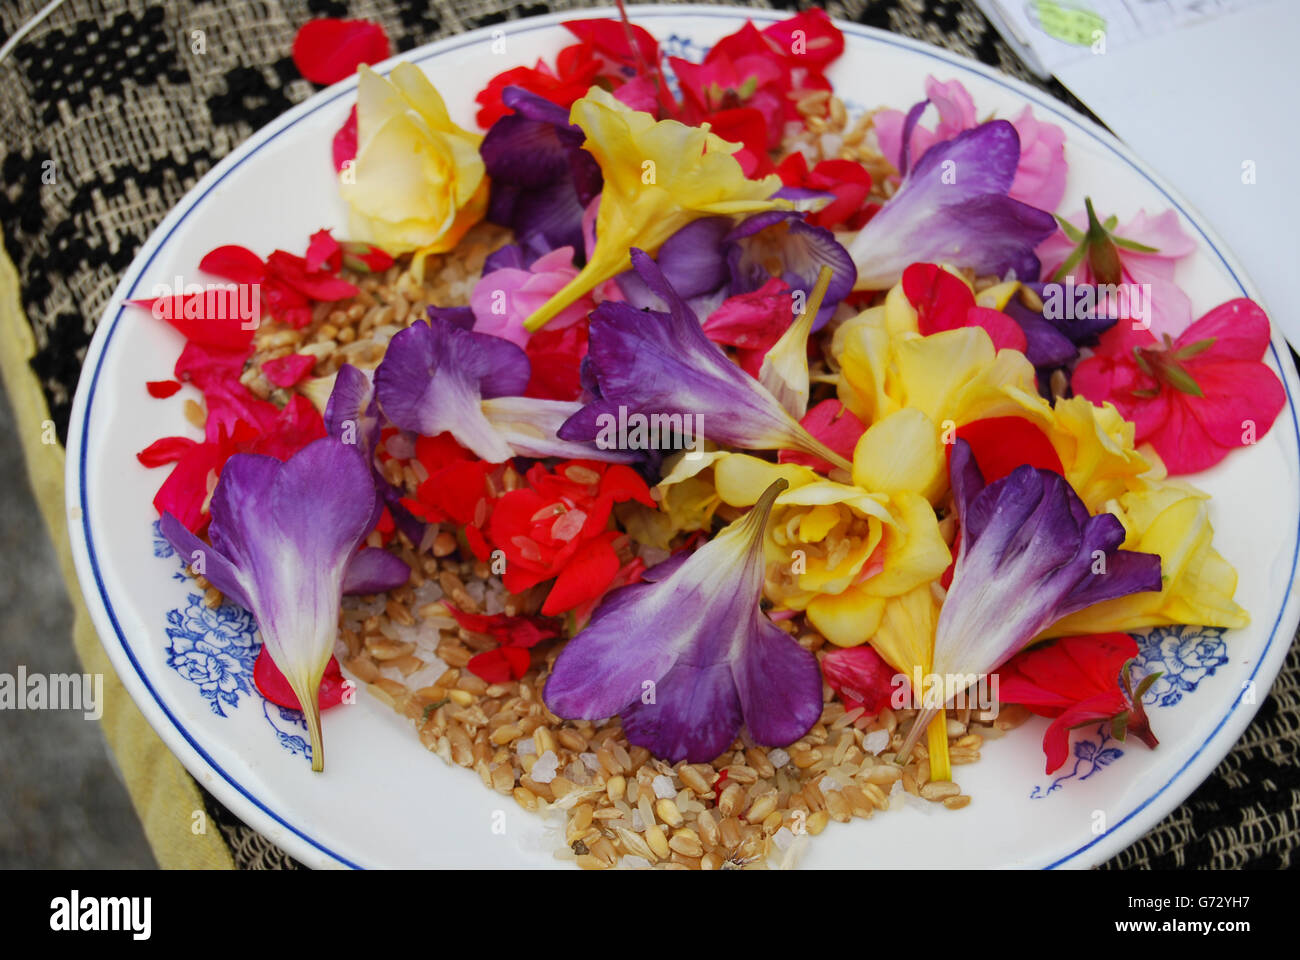 View of an assortment of edible flowers with plate - Stock Image